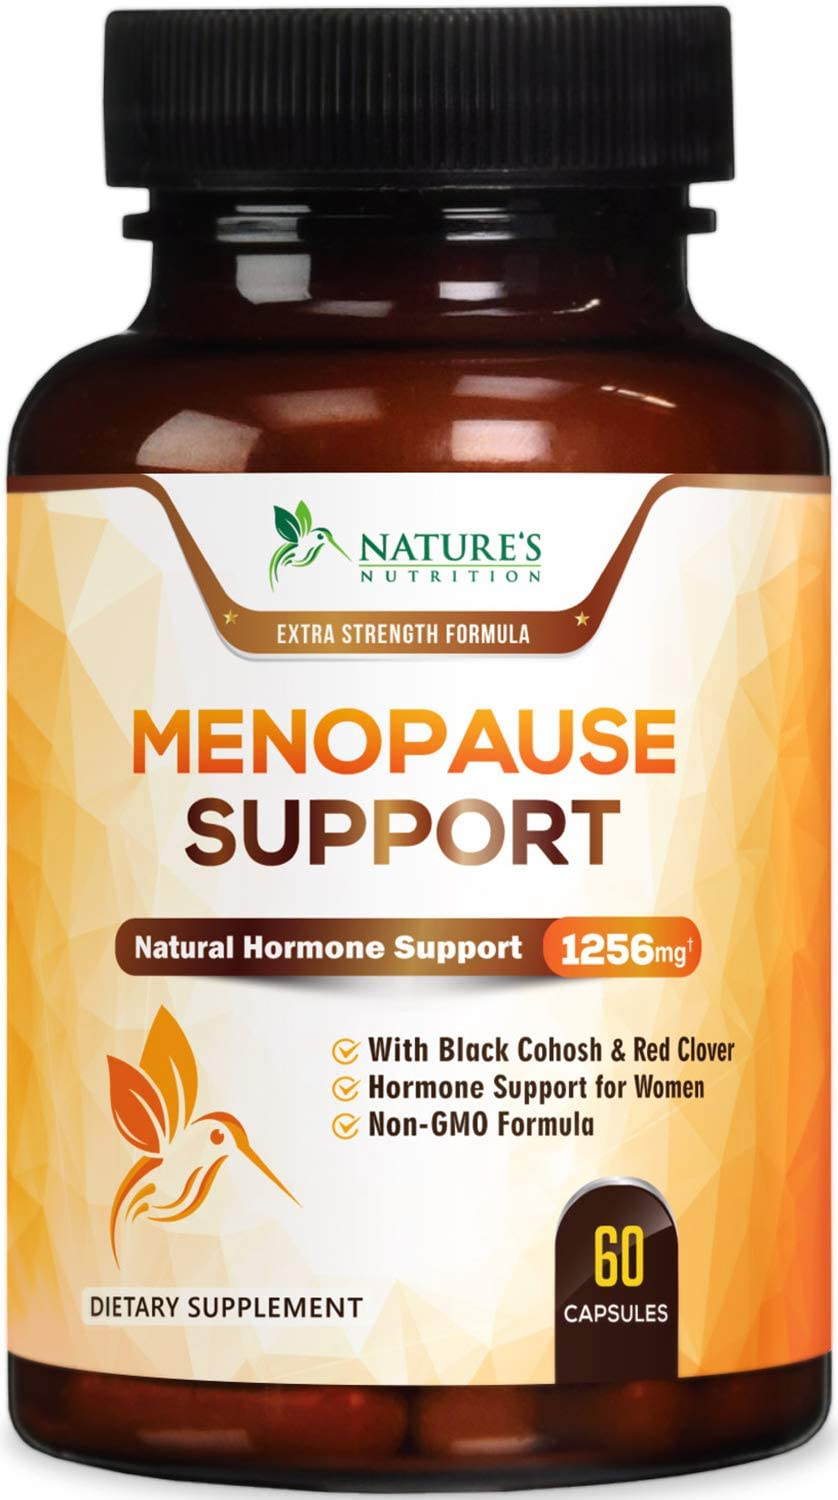 Menopause Supplements Highest Potency Hot Flash Relief 1256 mg - Estrogen & Hormone Balance Support for Women - Made in USA - Natural Pills w/Black Cohosh, Dong Quai & Soy Isoflavones - 60 Capsules